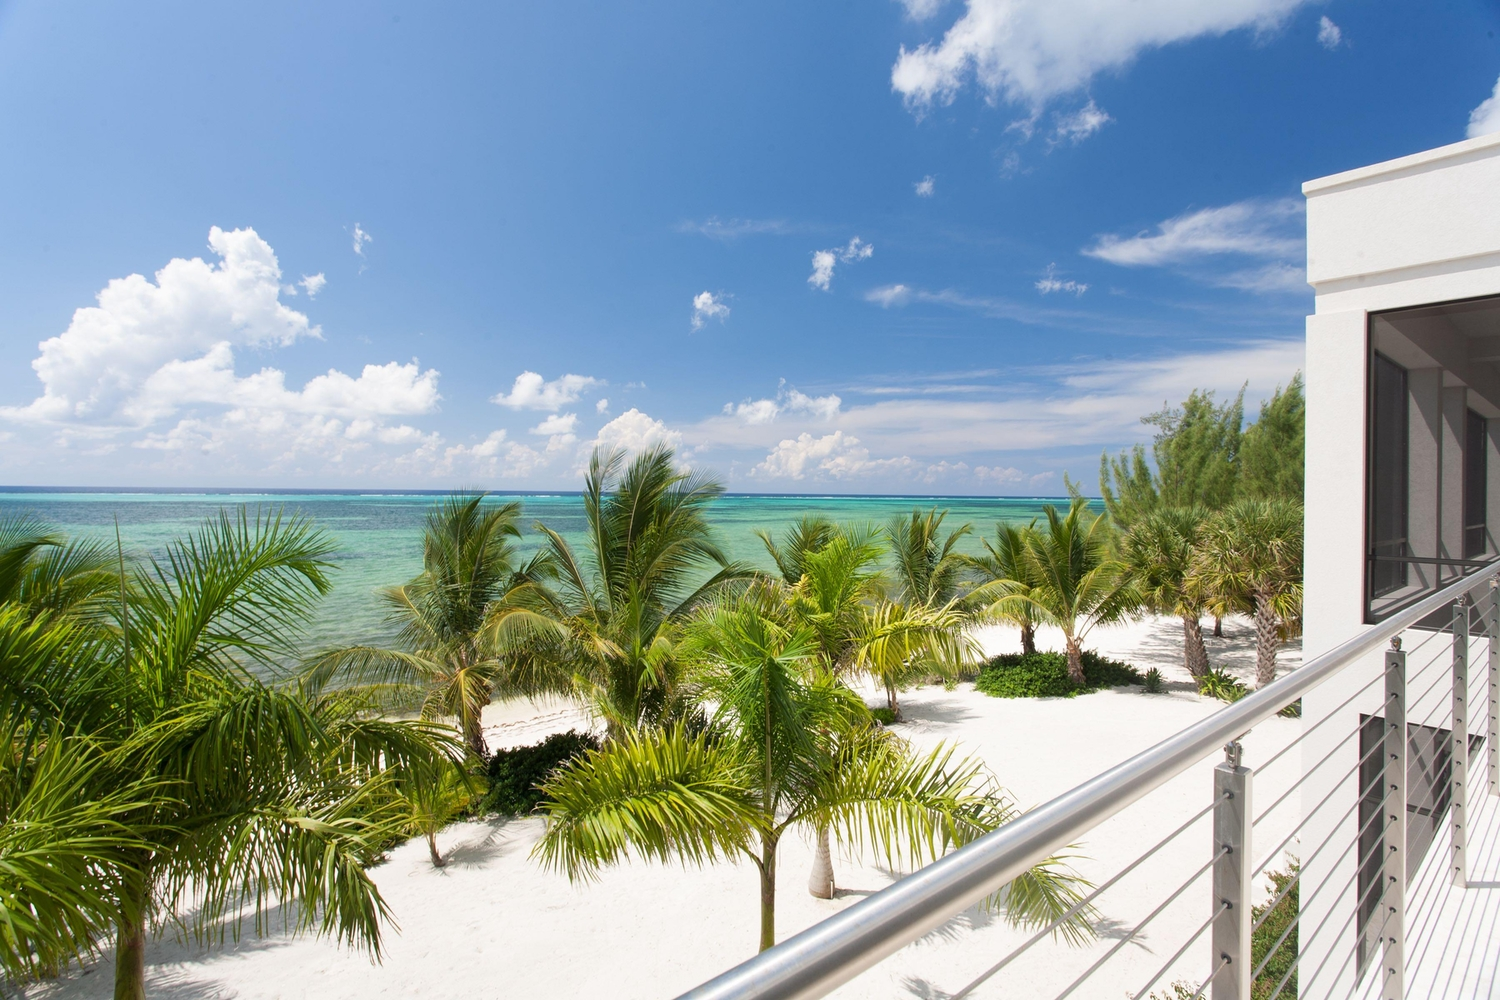 View off of a white luxury condo balcony overlooking the ocean